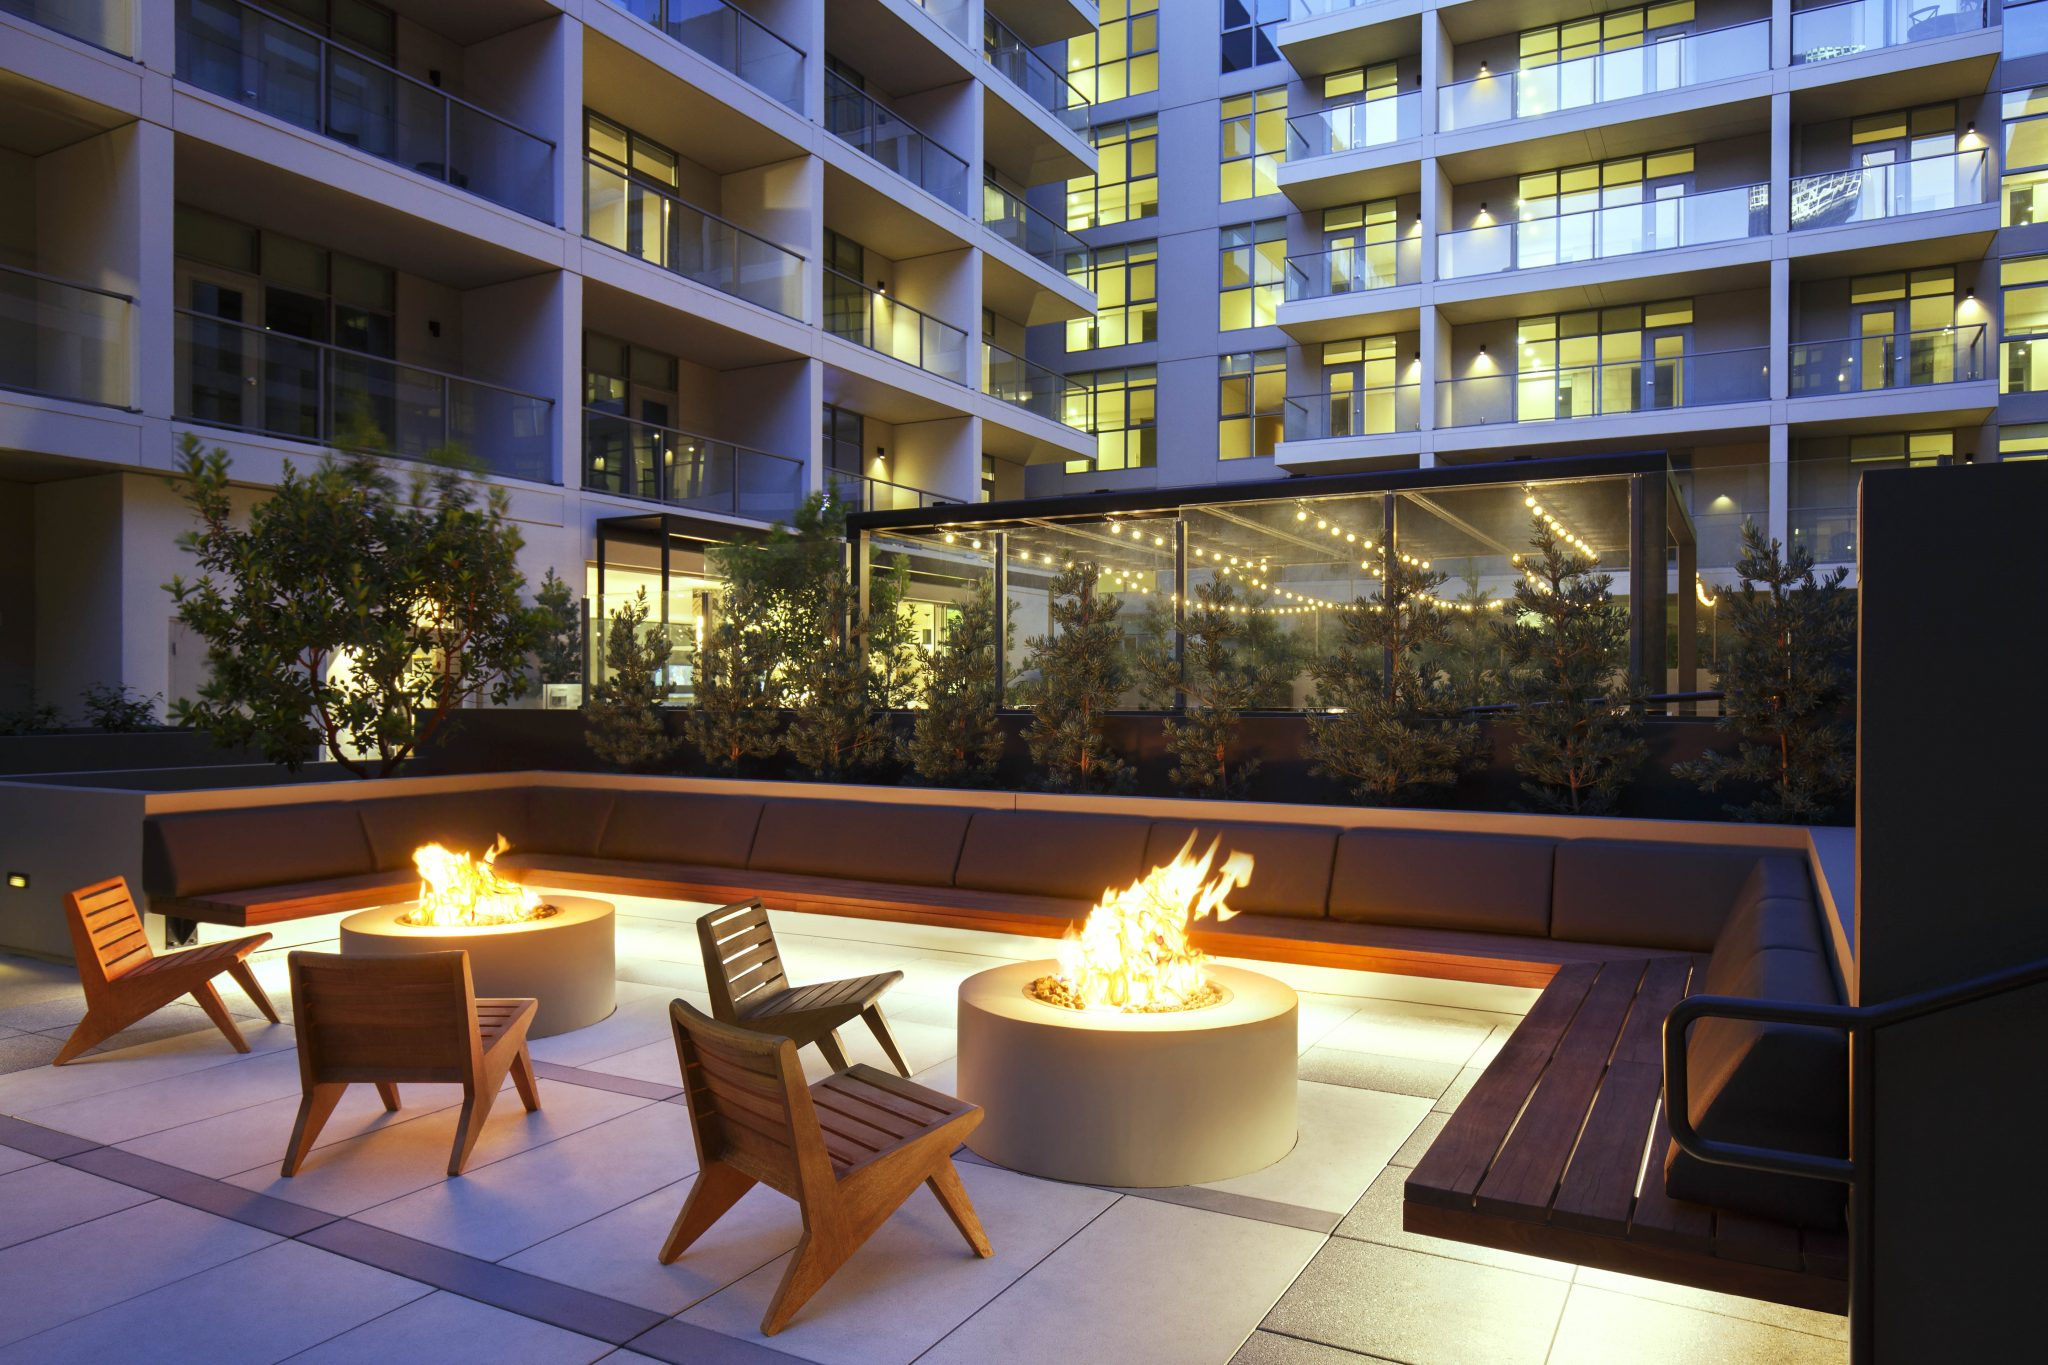 Outdoor seating area with two fire pits and apartment building in background.